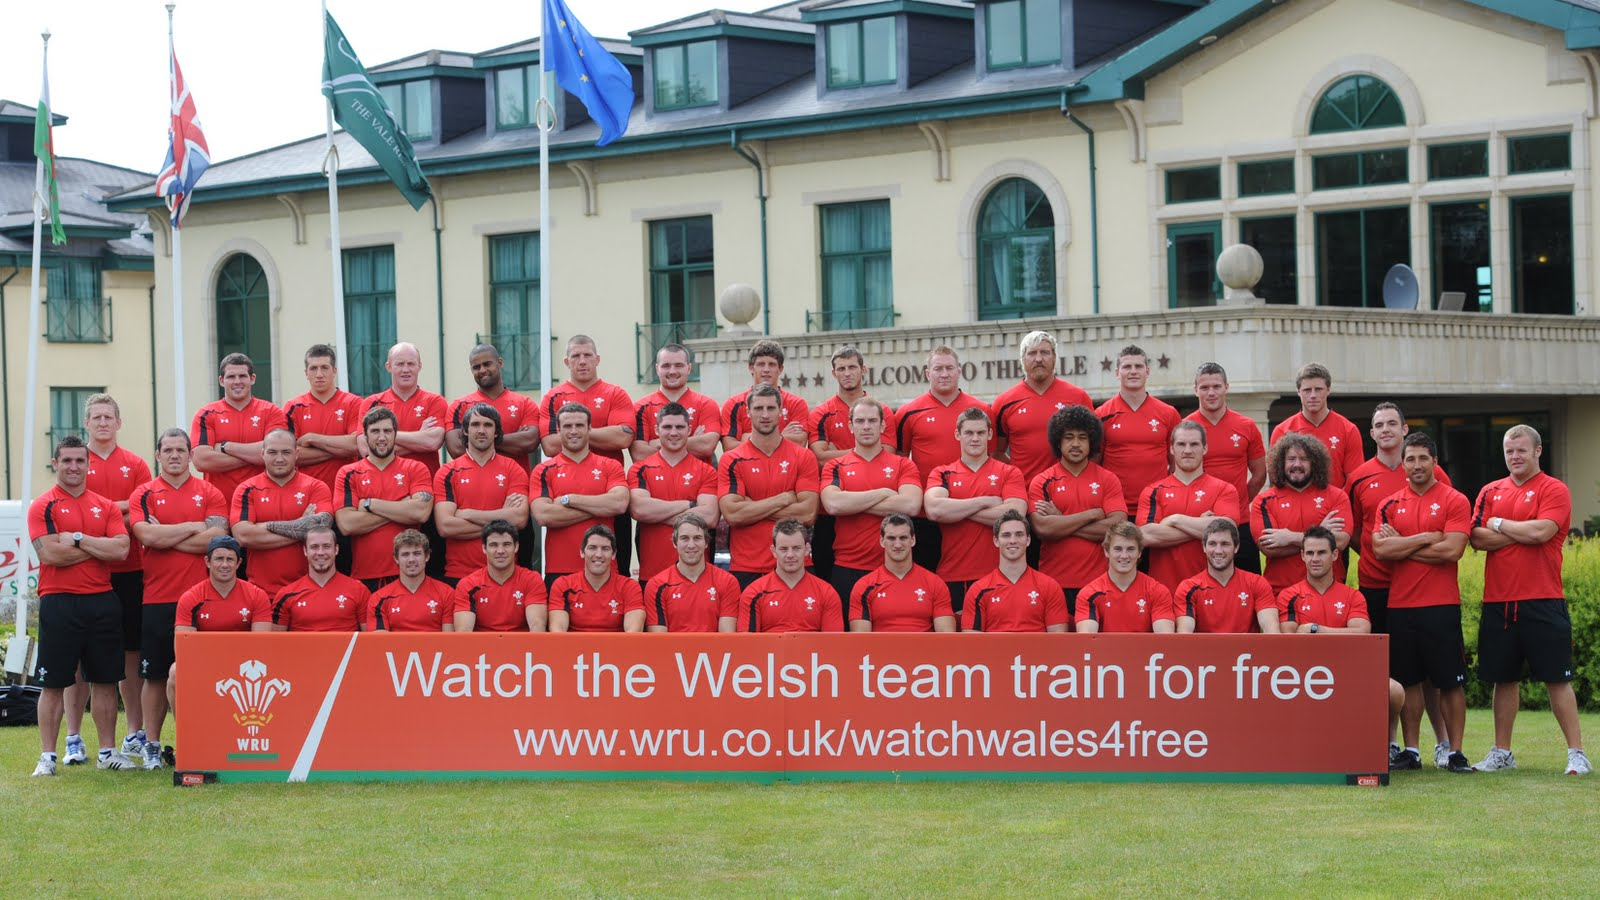 Welsh rugby team photo 4 Pics 1 Word Levels 351-400 Answers - App Game Answers